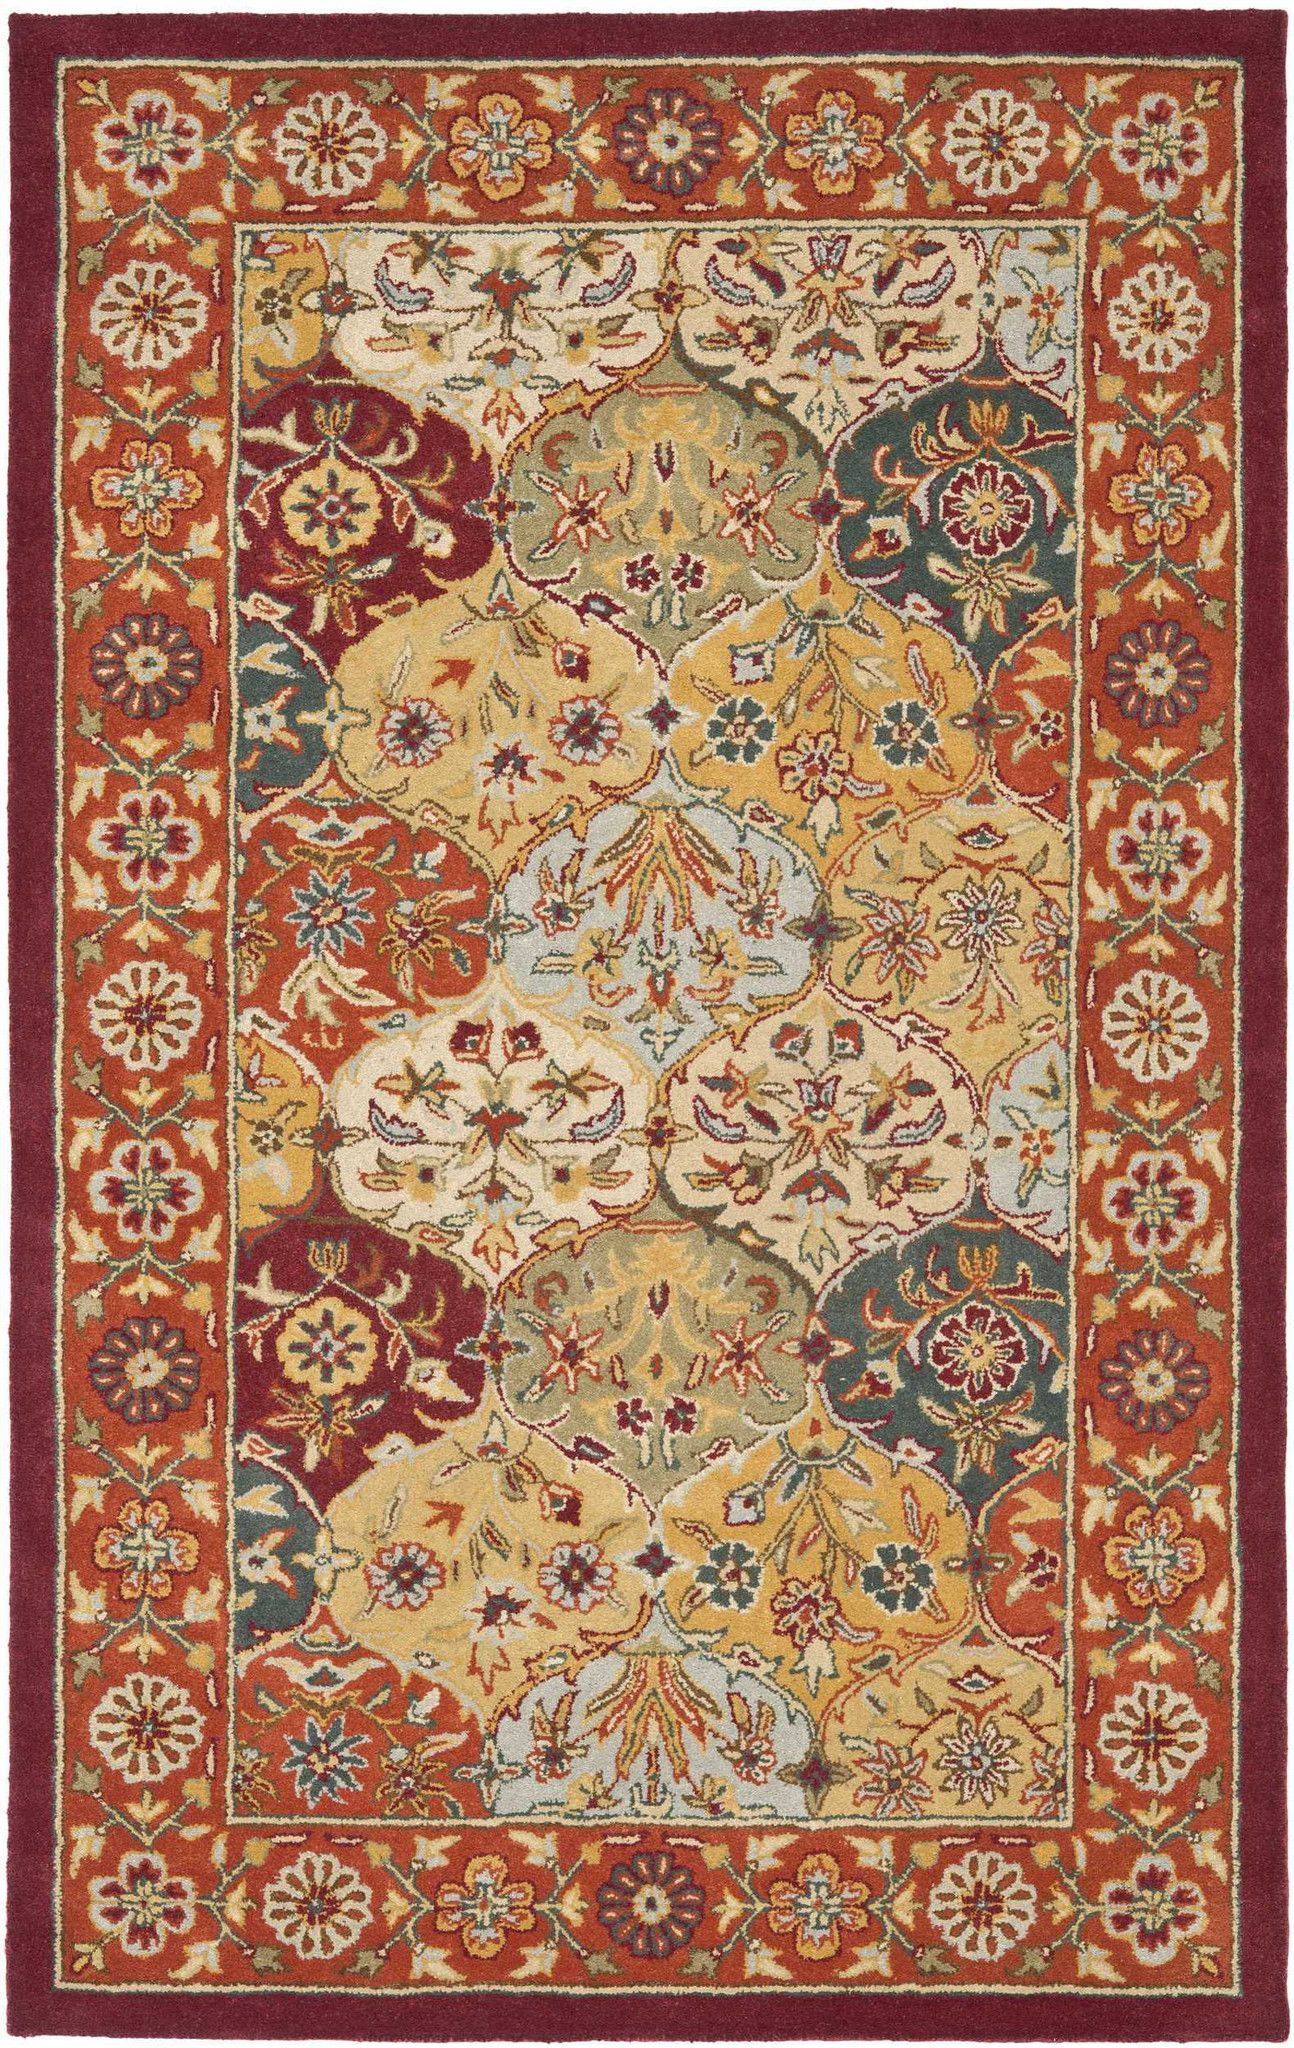 Safavieh Heritage Hg510 Area Rug With Images Persian Rug